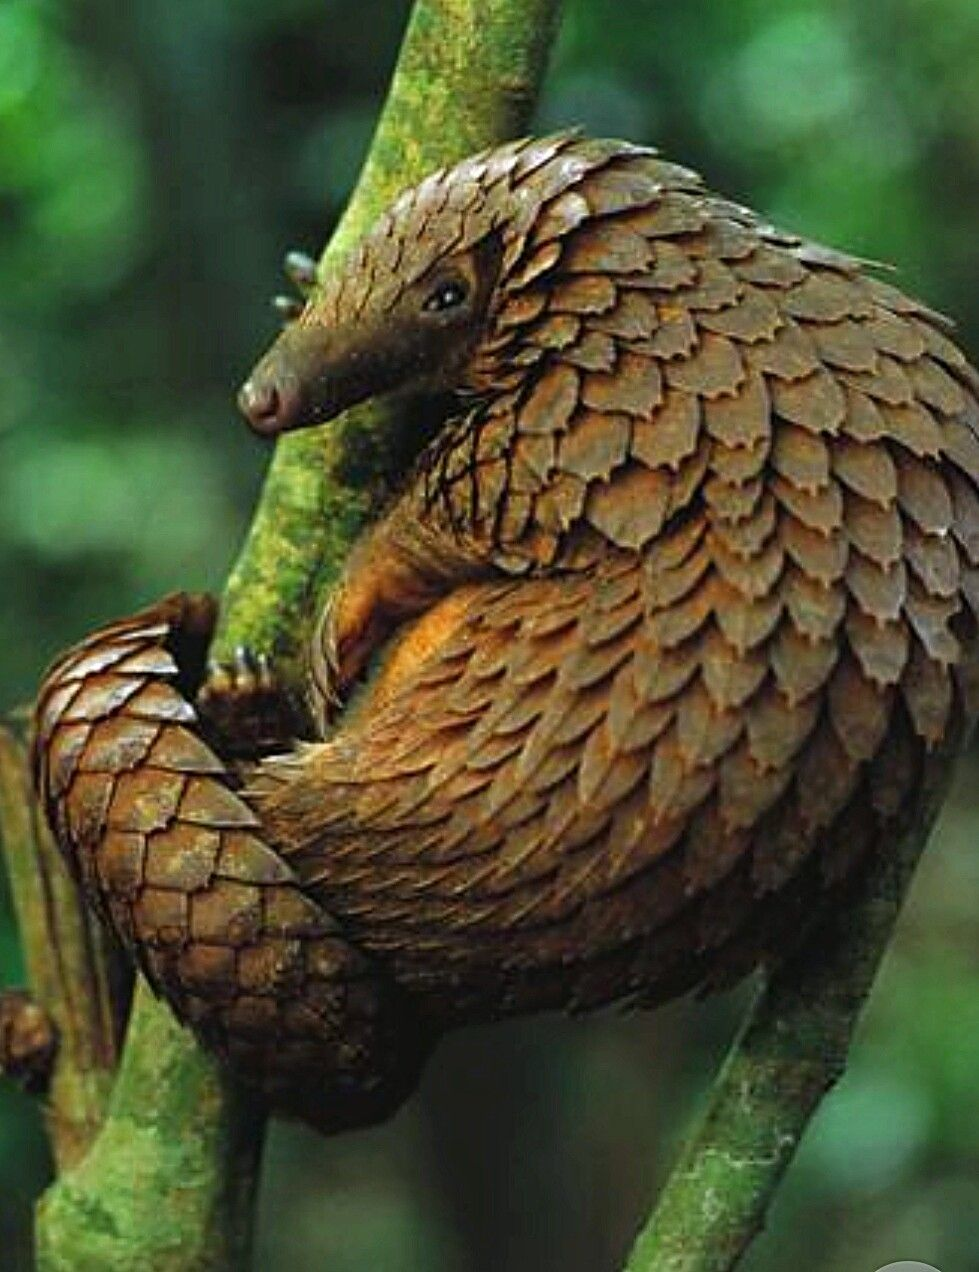 The Pangolin is the only mammal with scales. Rare